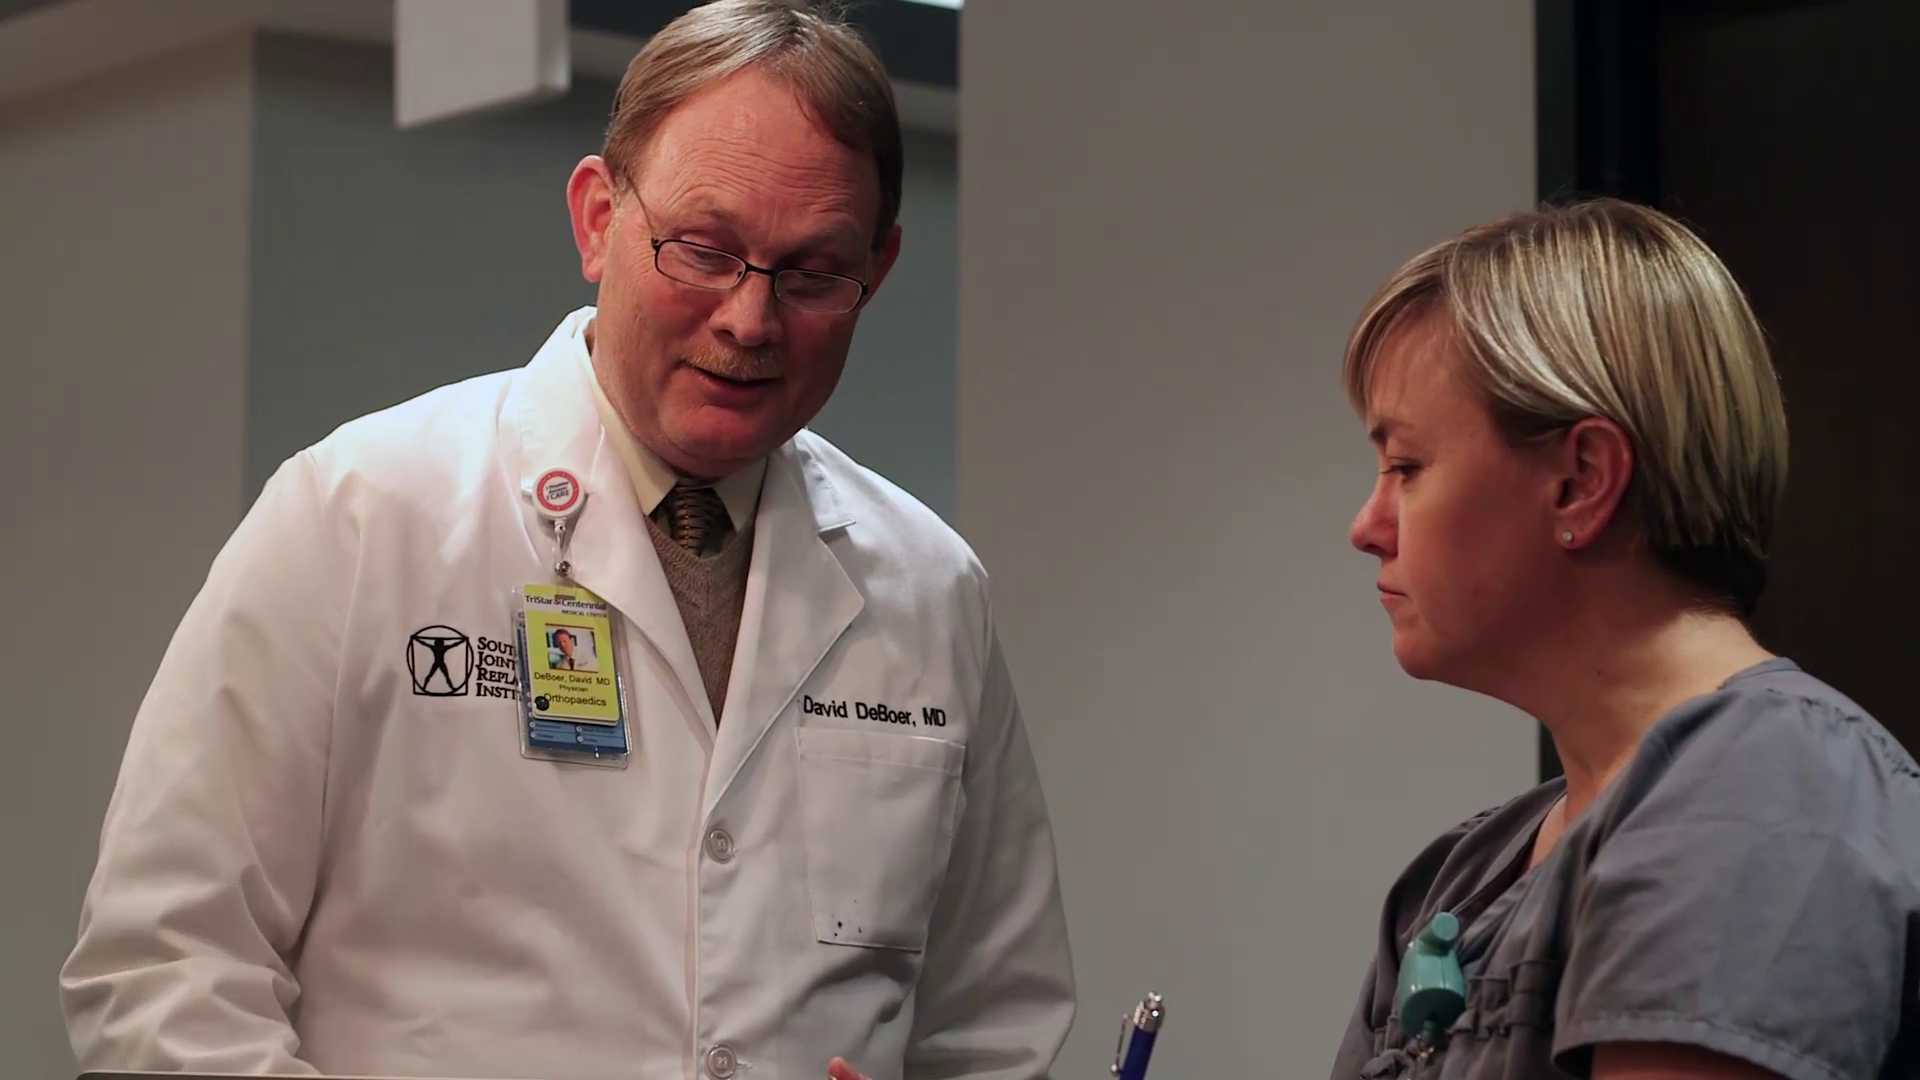 Dr. Deboer talks about his practice